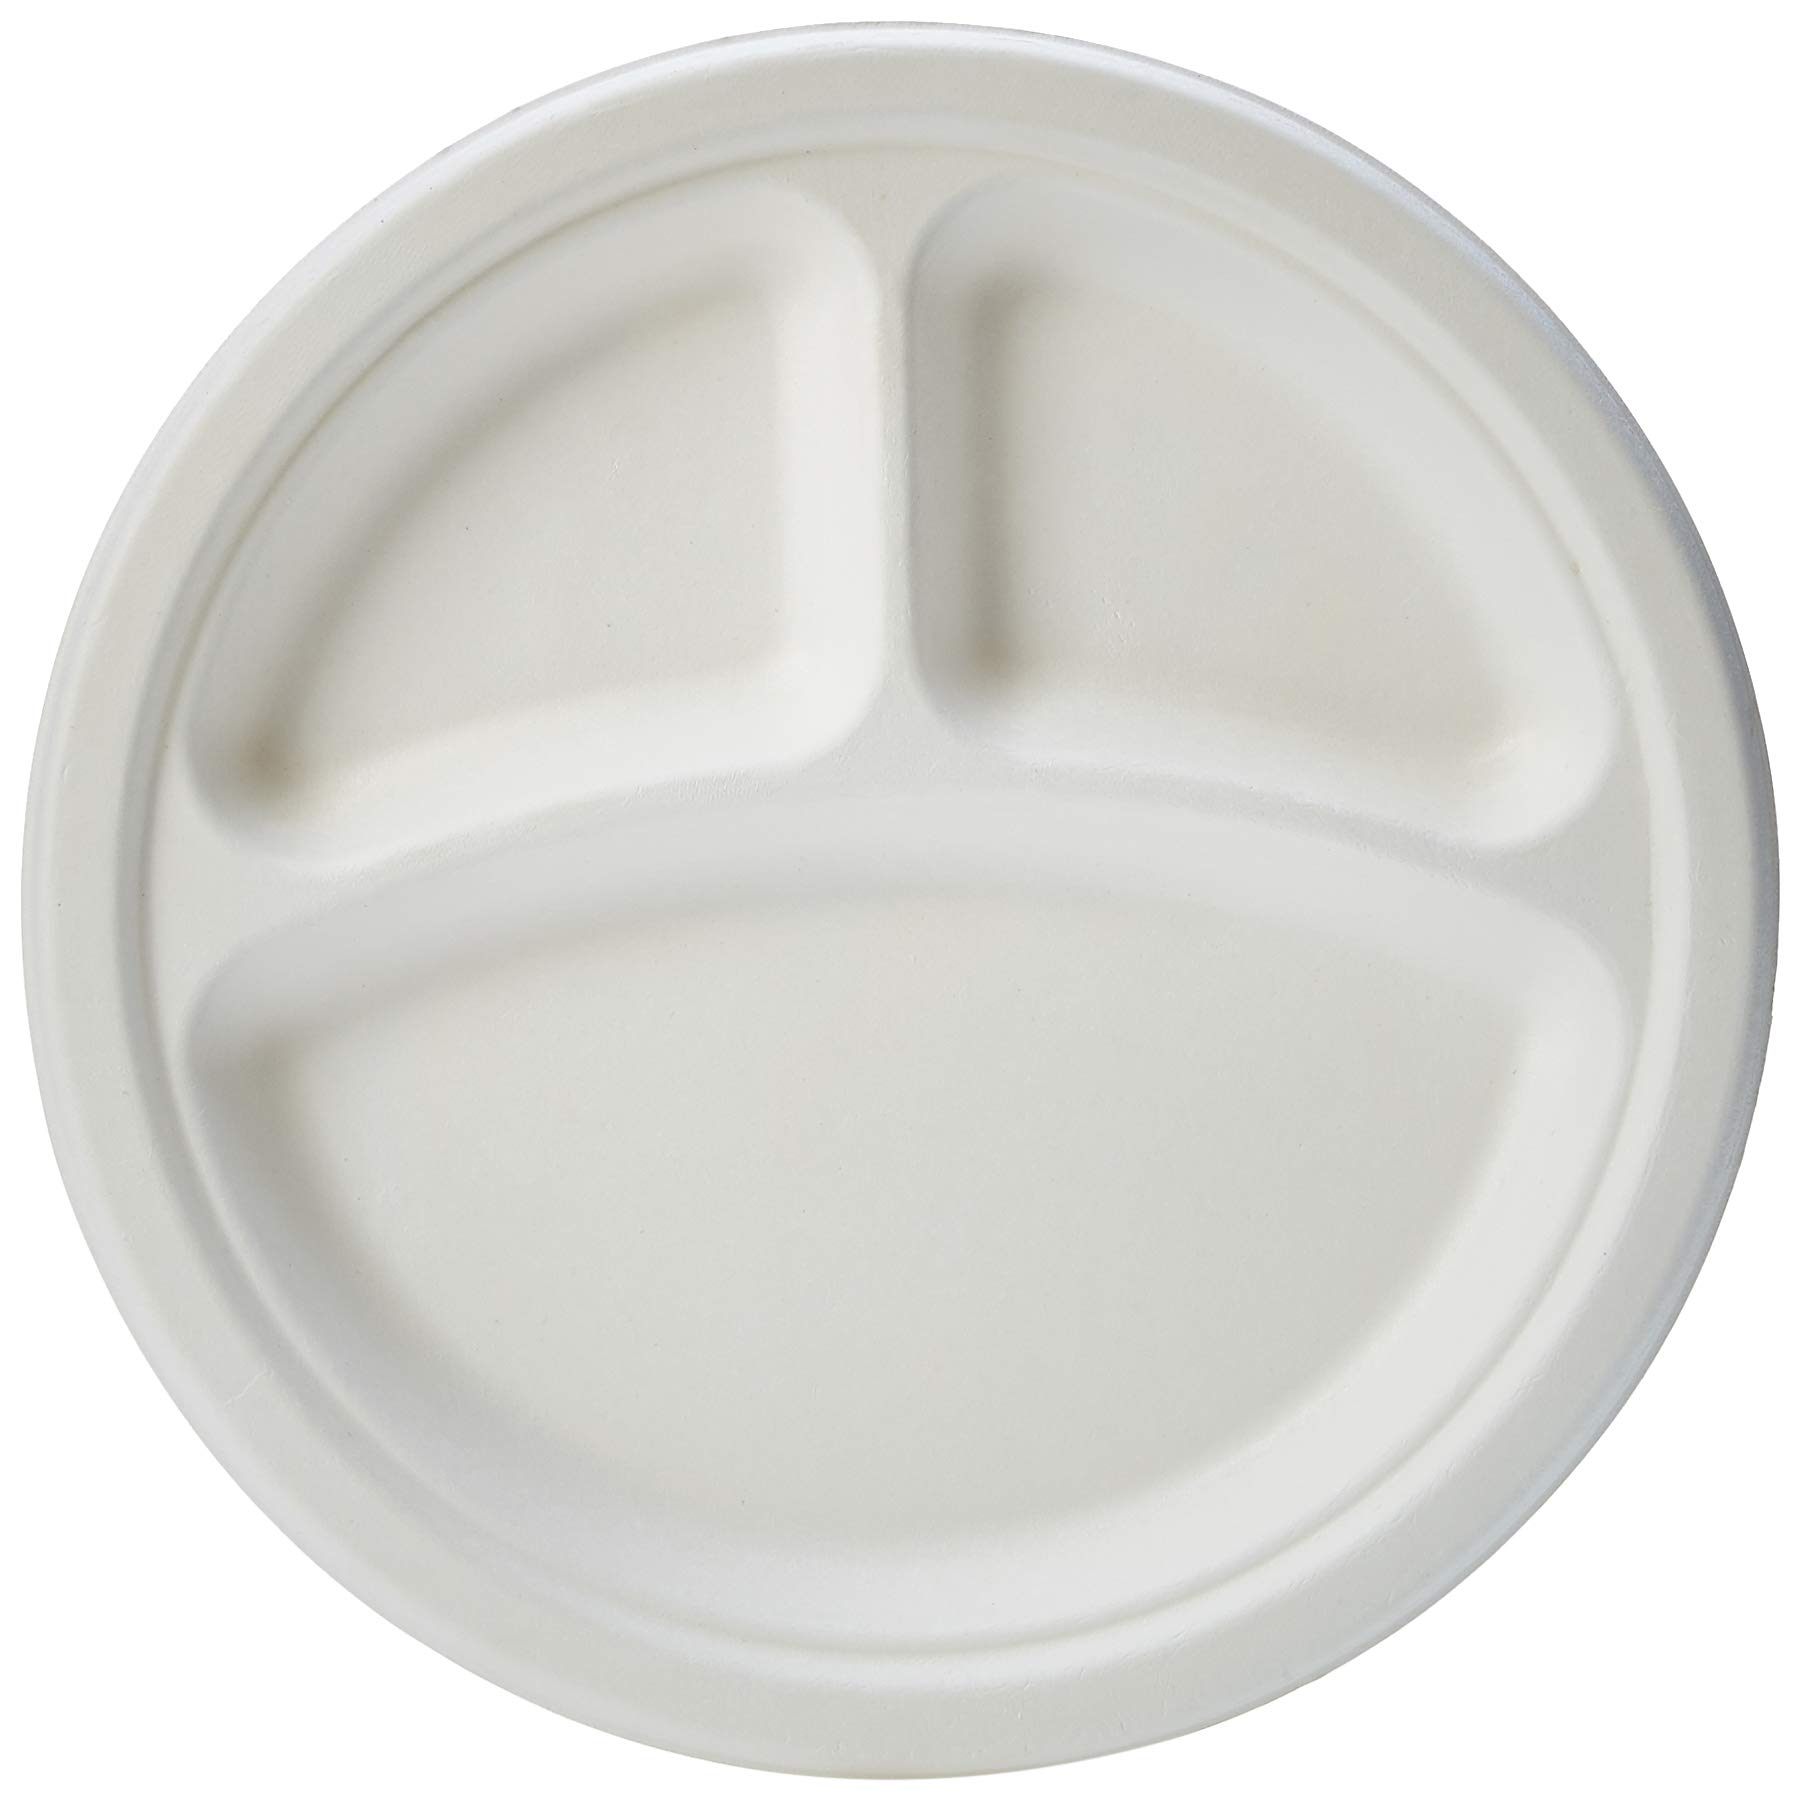 AmazonBasics Compostable Plate, 3 Compartment, 10-Inches, 500-Count